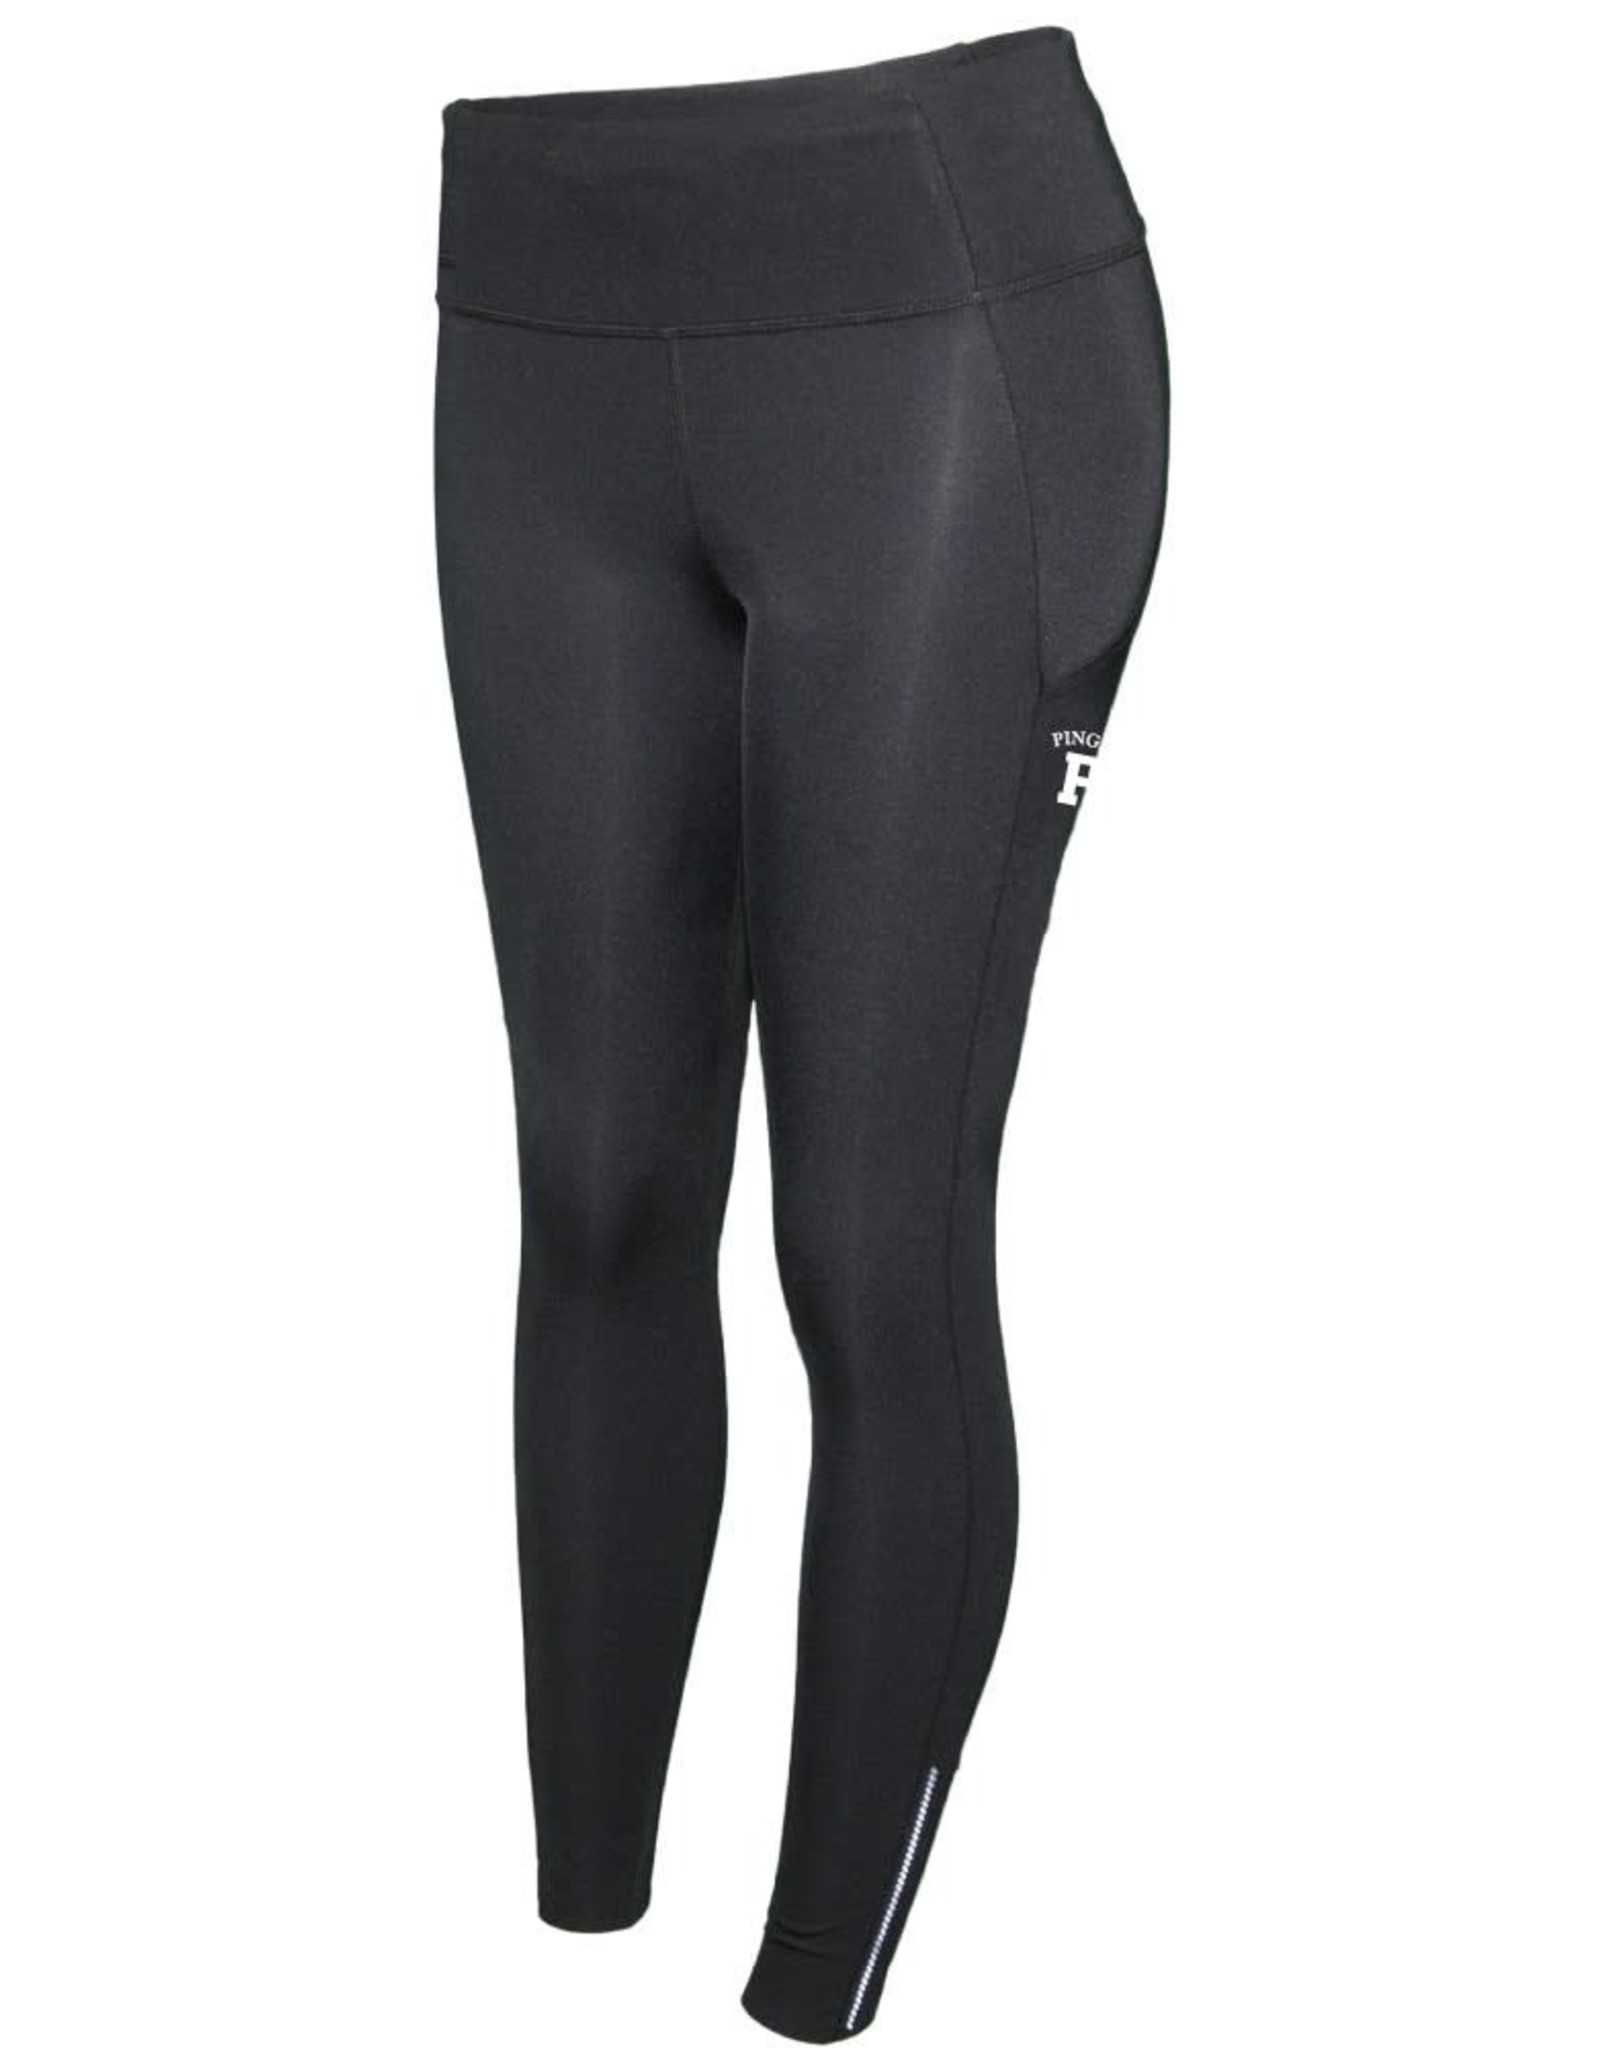 Legging with pockets-adult